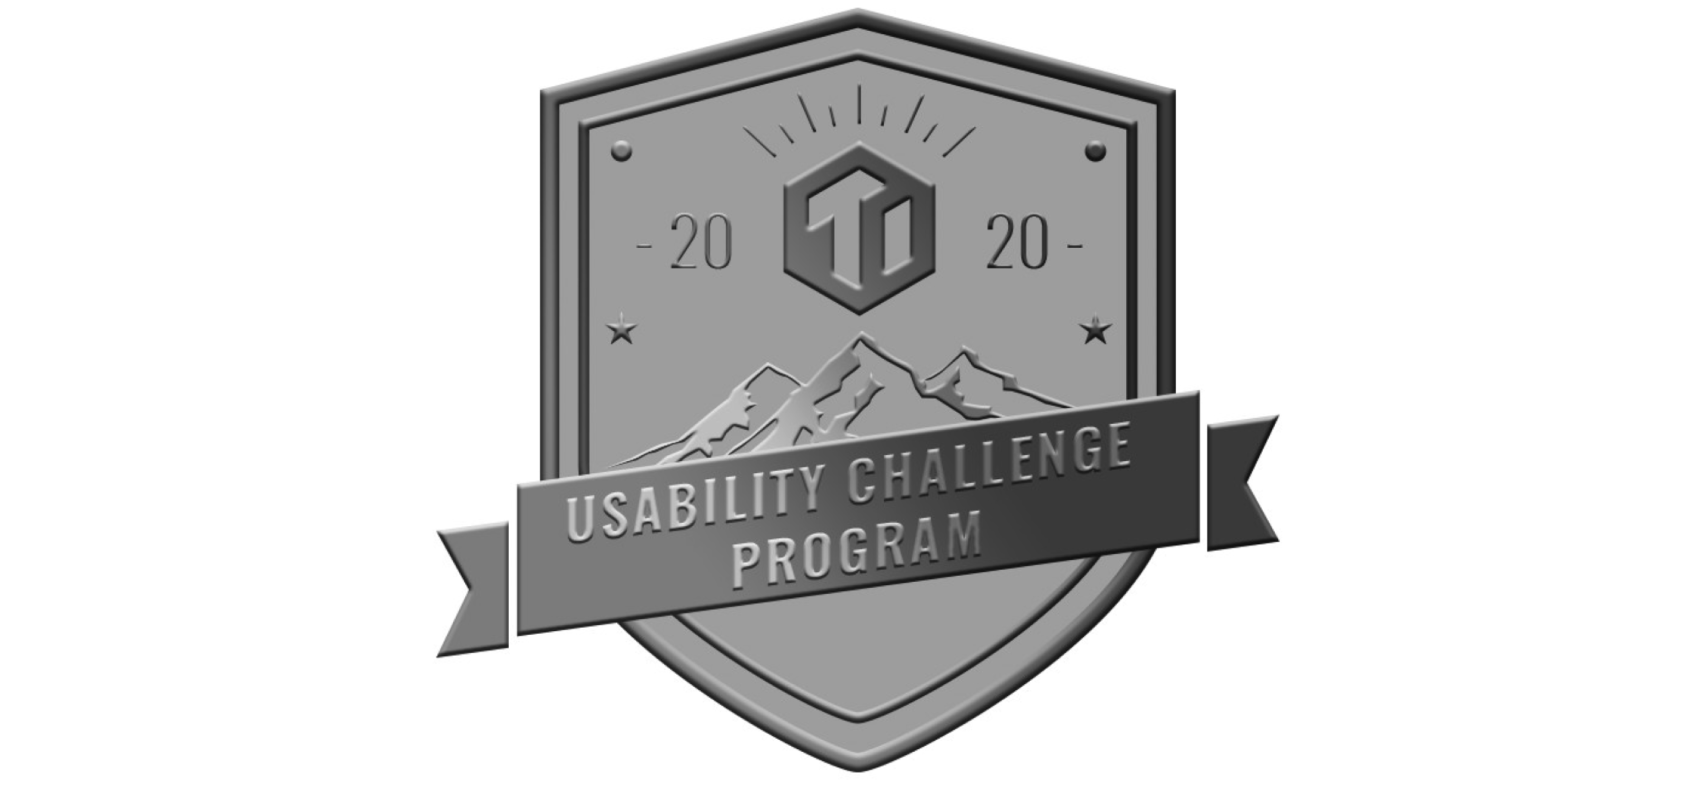 Usability Challenge Program badge